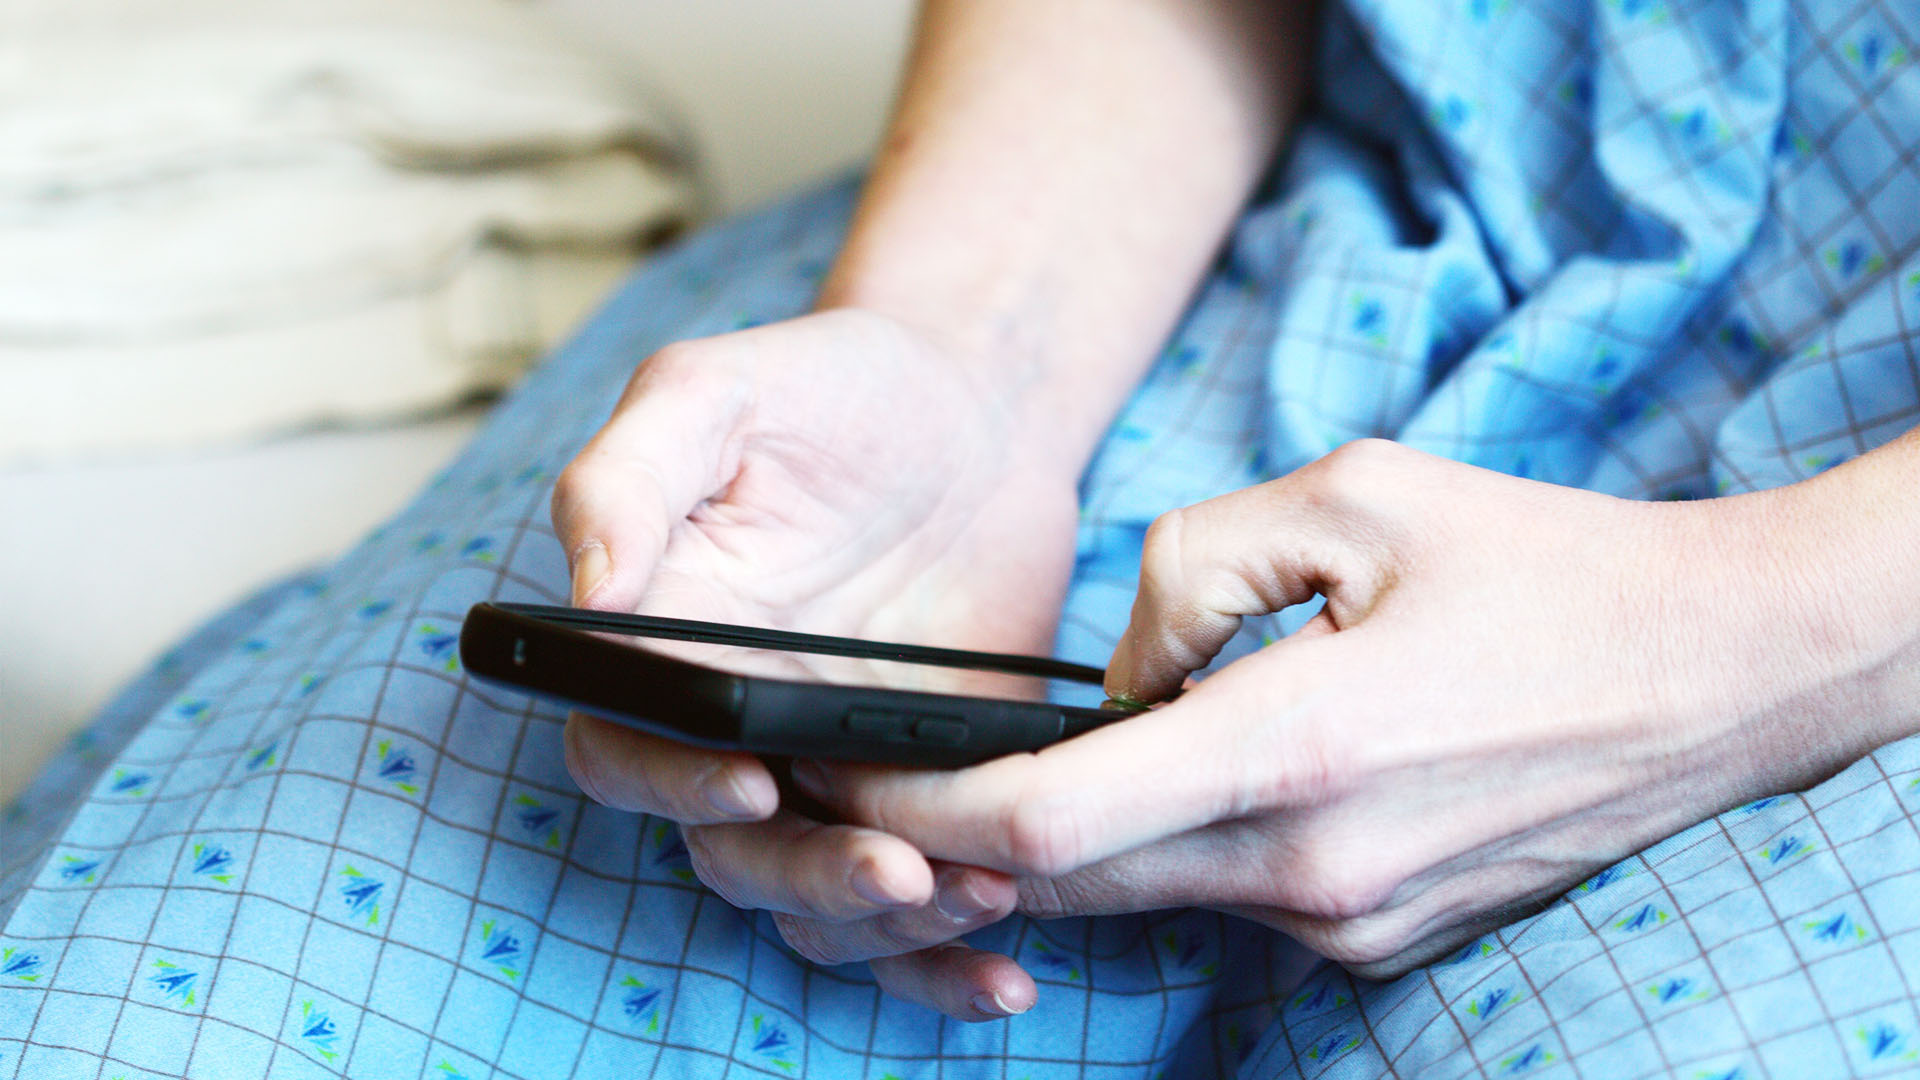 Increasing Patient Engagement and Lowering Medical Non-Adherence